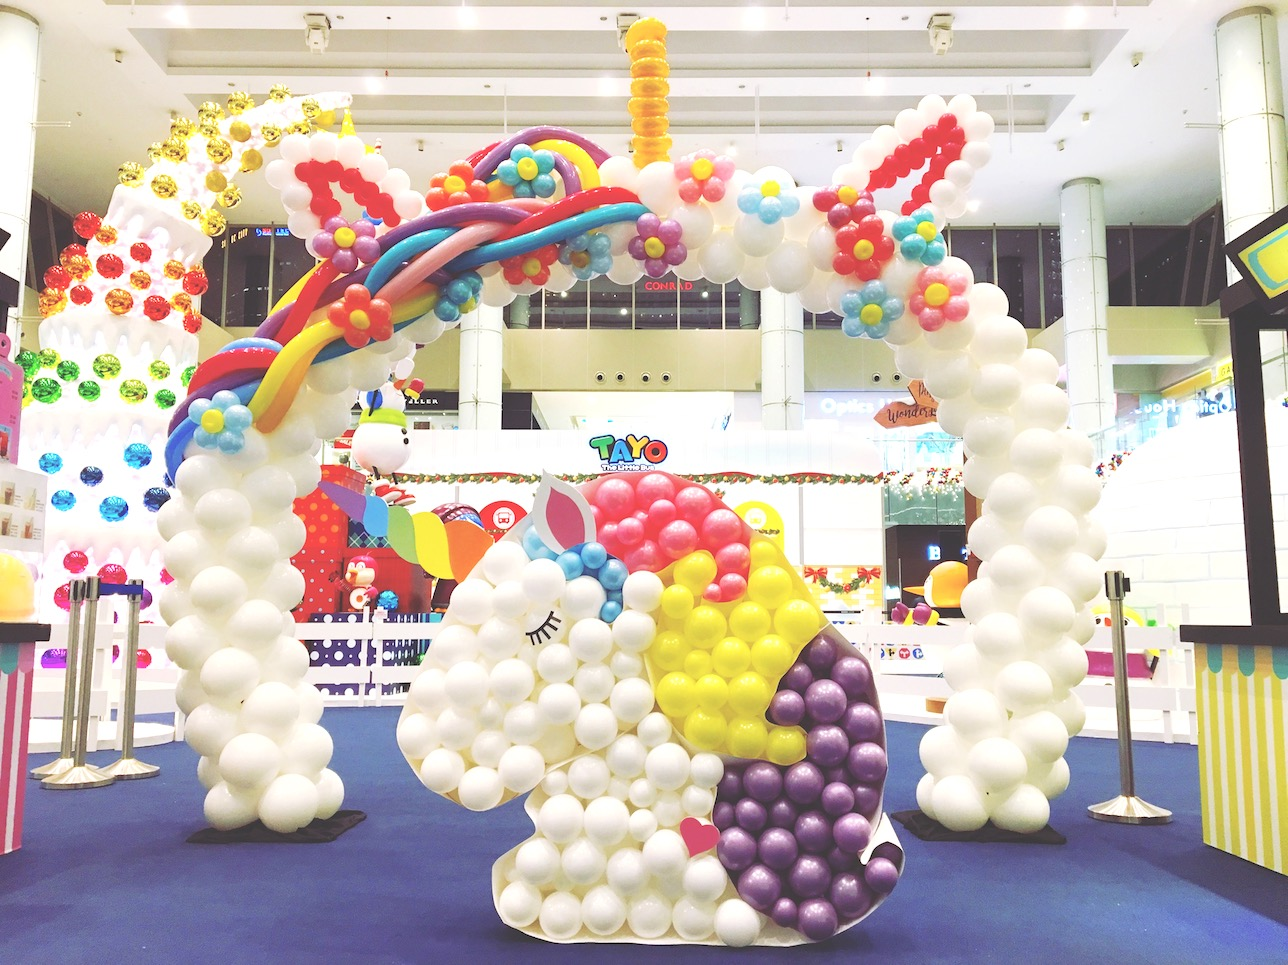 Balloon unicorn decoration that balloons for Balloon decoration for birthday party philippines